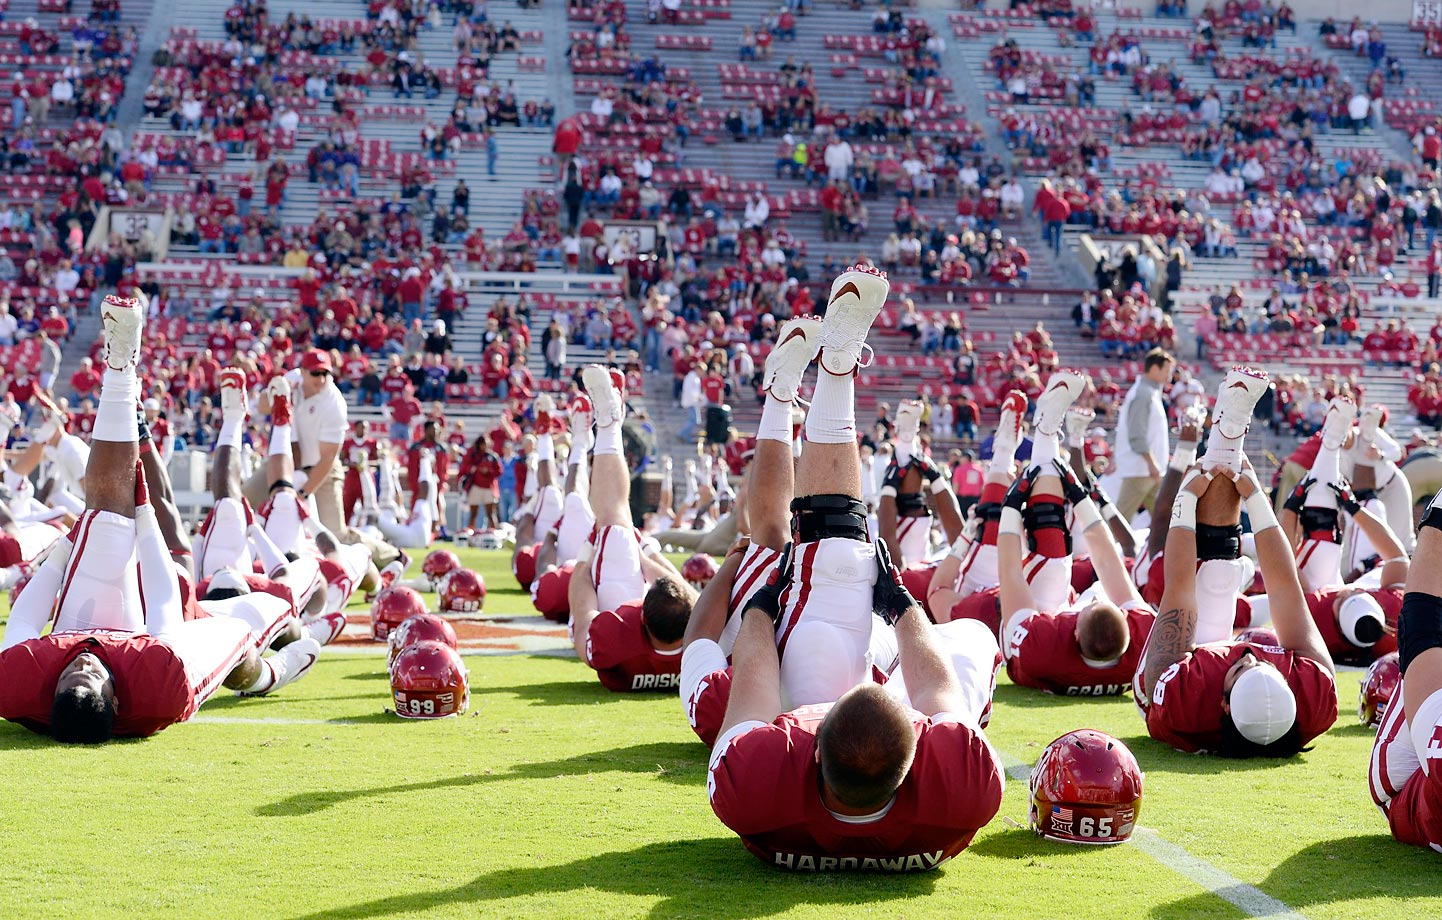 Oklahoma players stretch prior to their game against Kansas State.